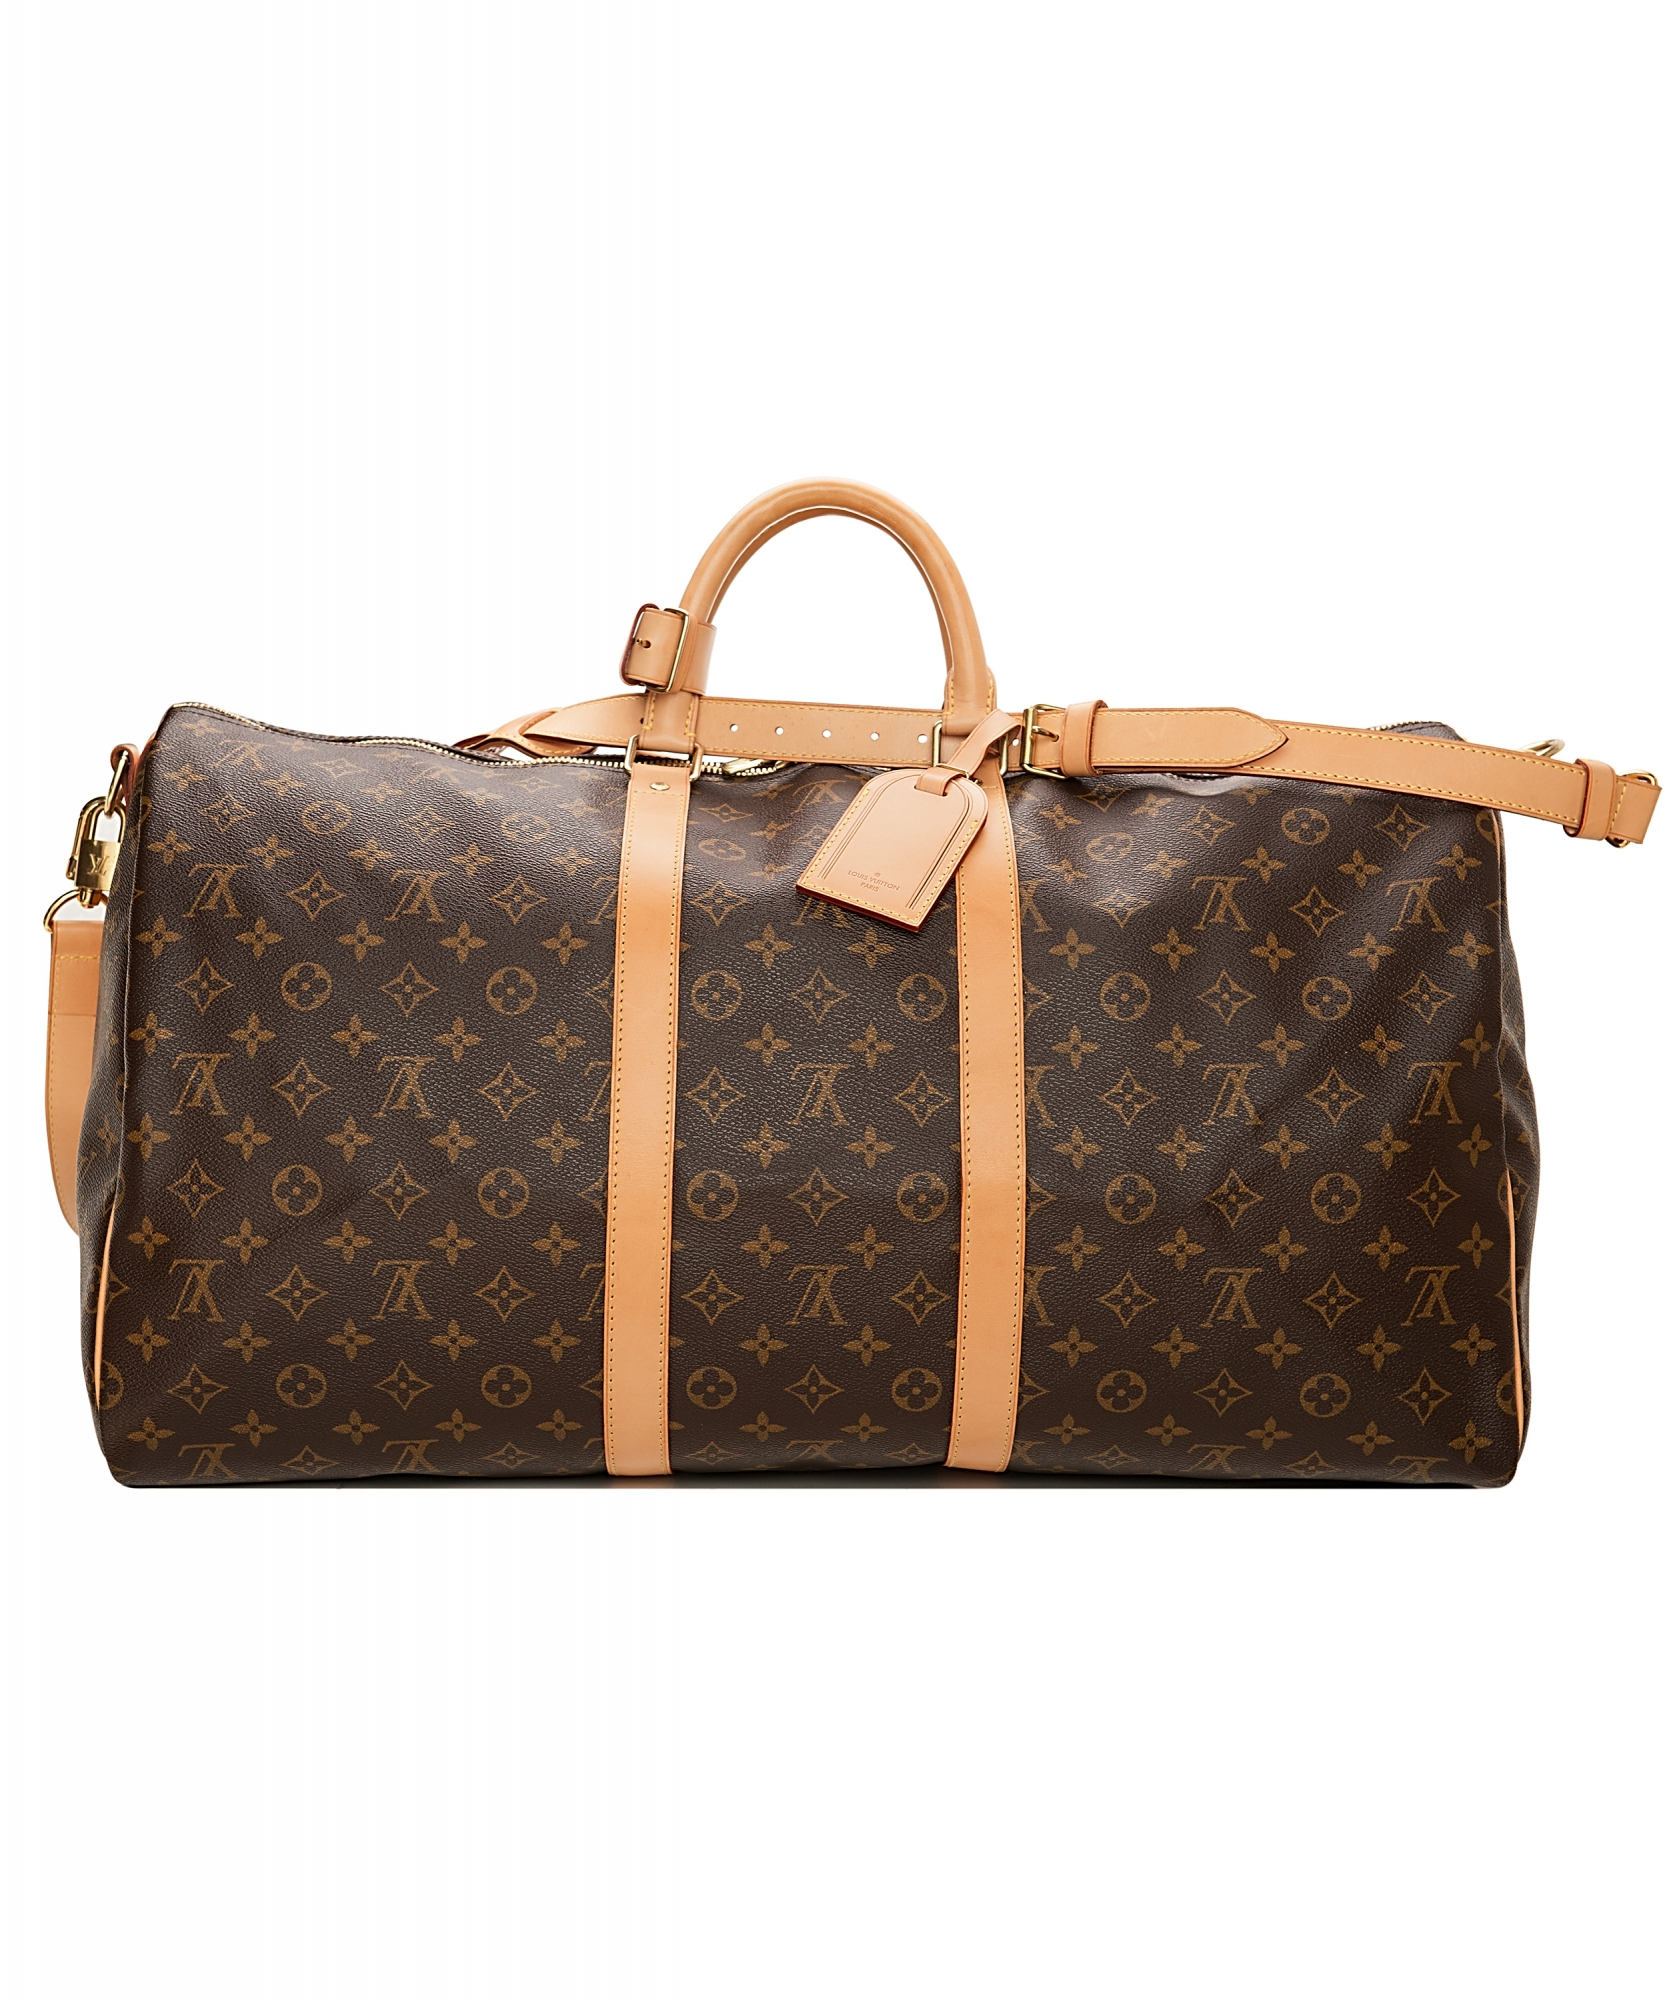 louis vuitton keepall 55 monogram canvas la doyenne. Black Bedroom Furniture Sets. Home Design Ideas